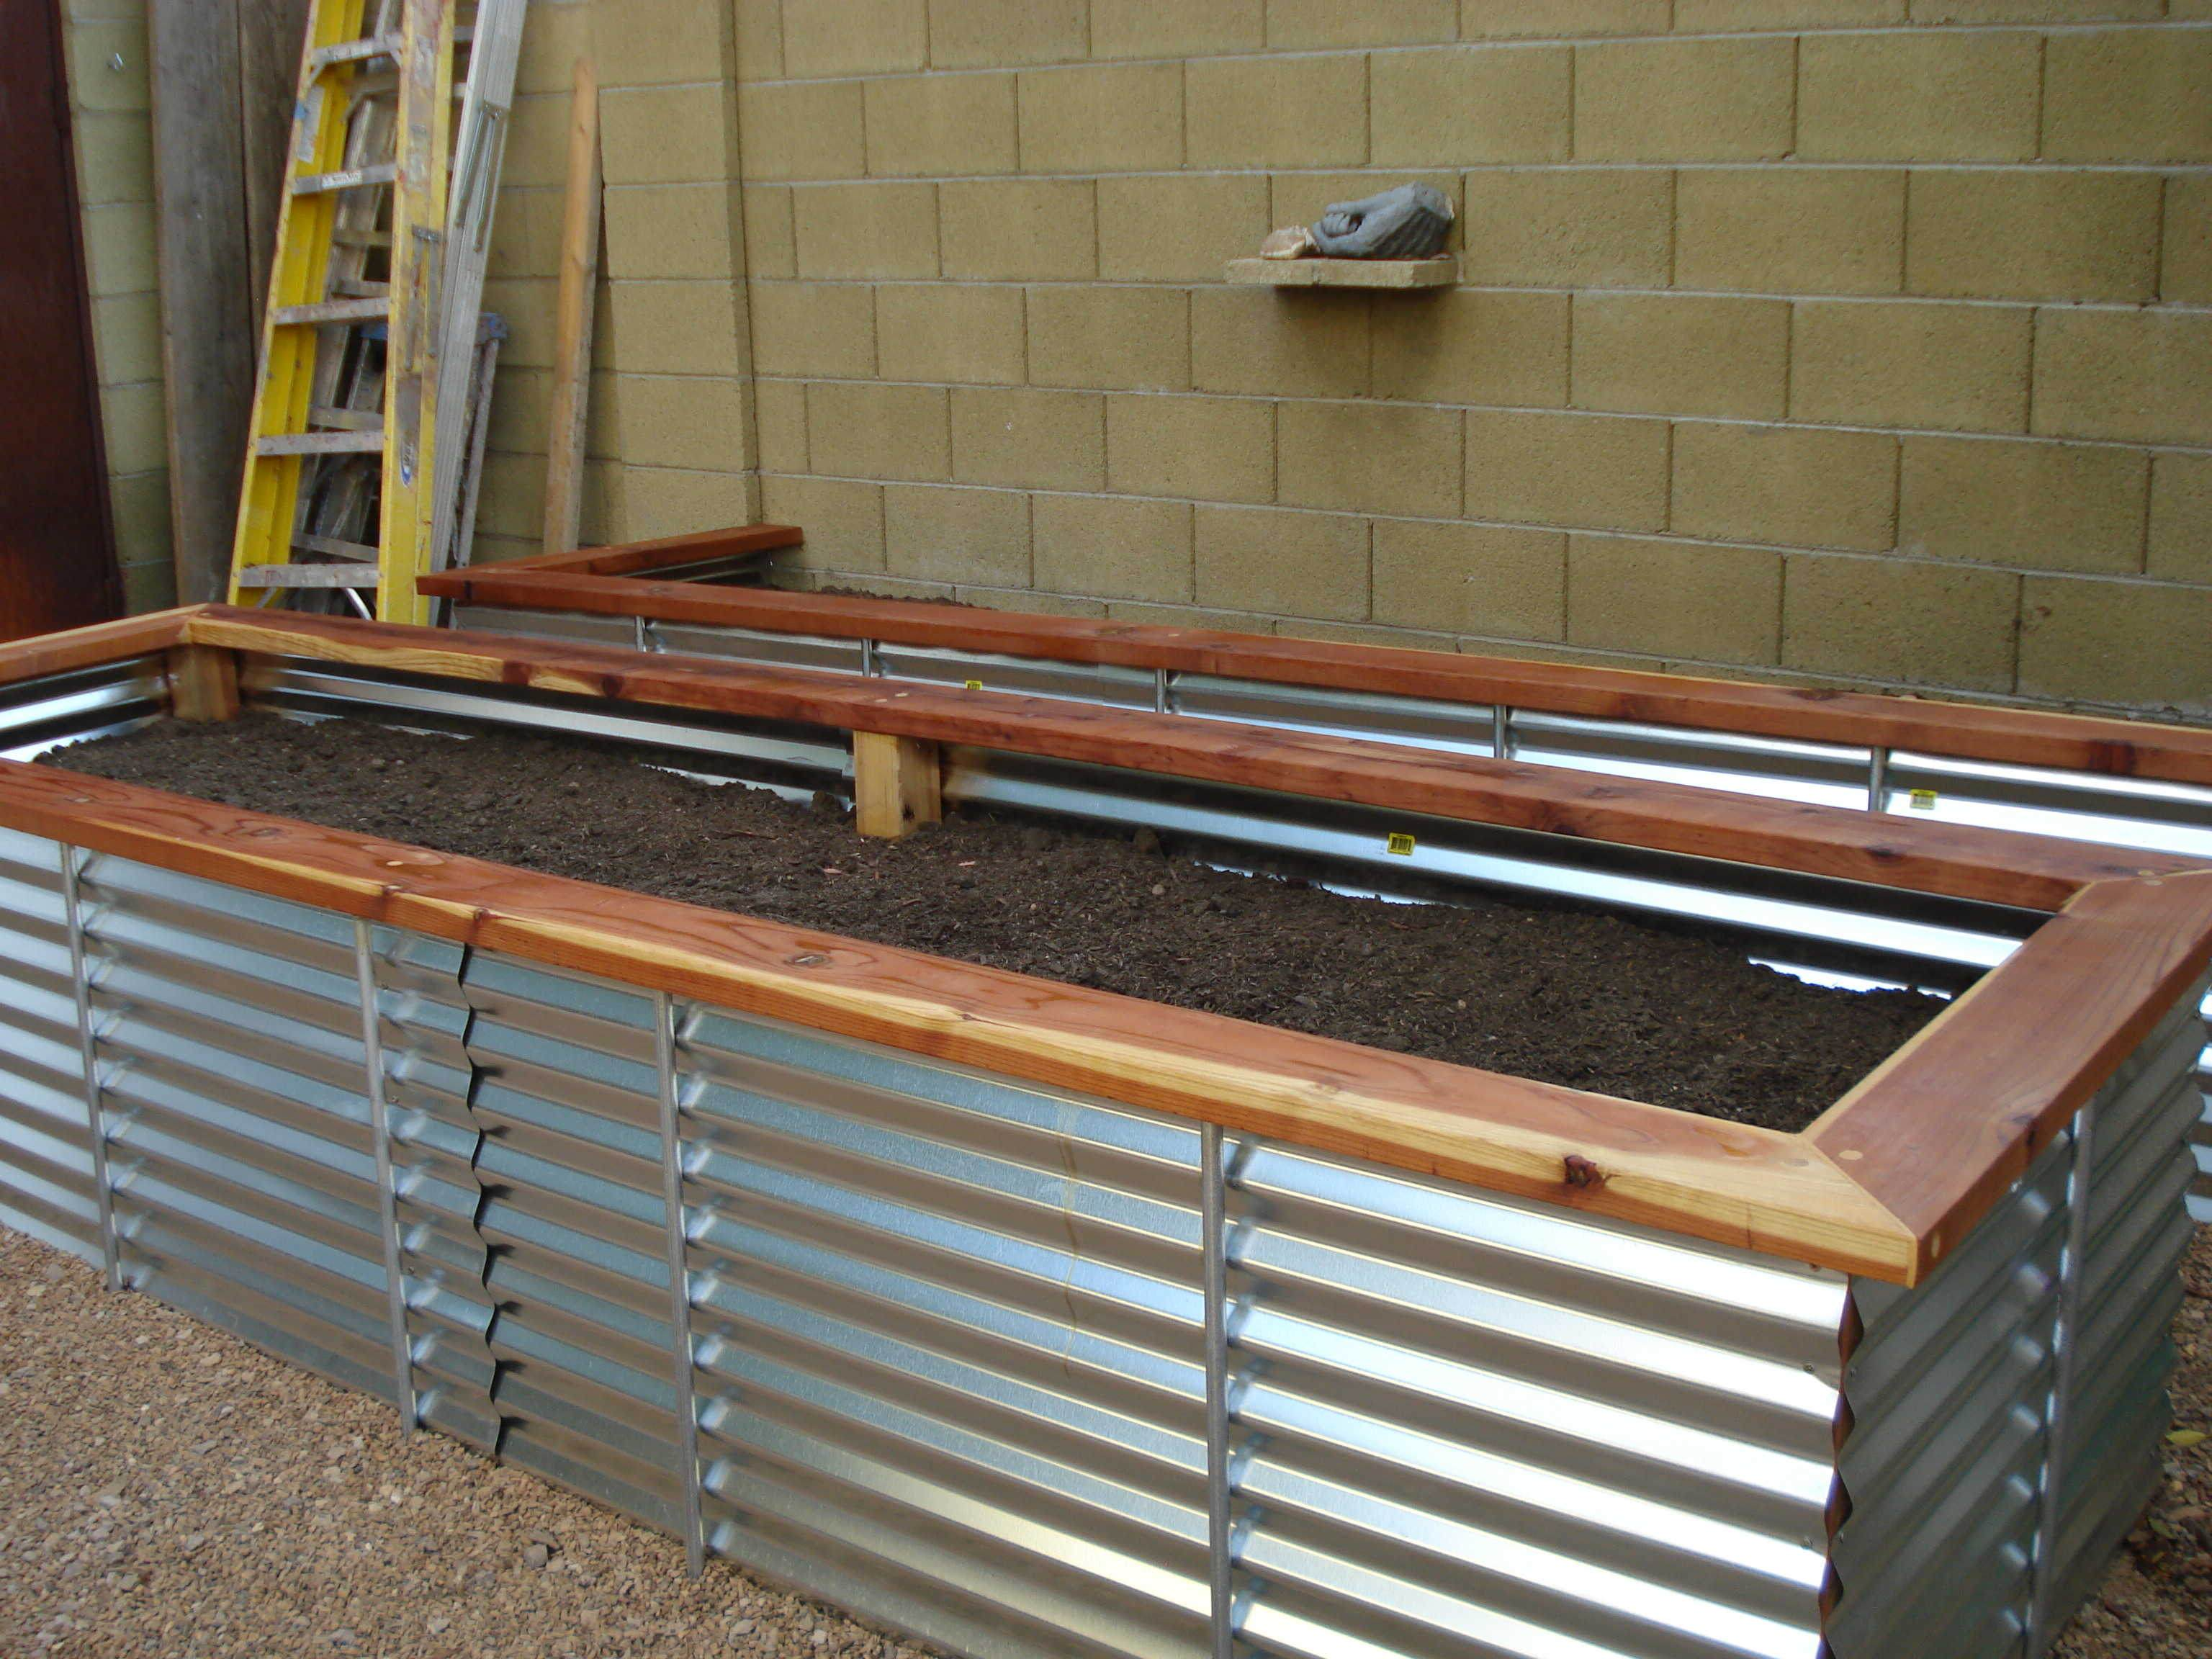 Building Raised Garden Beds peeinncom